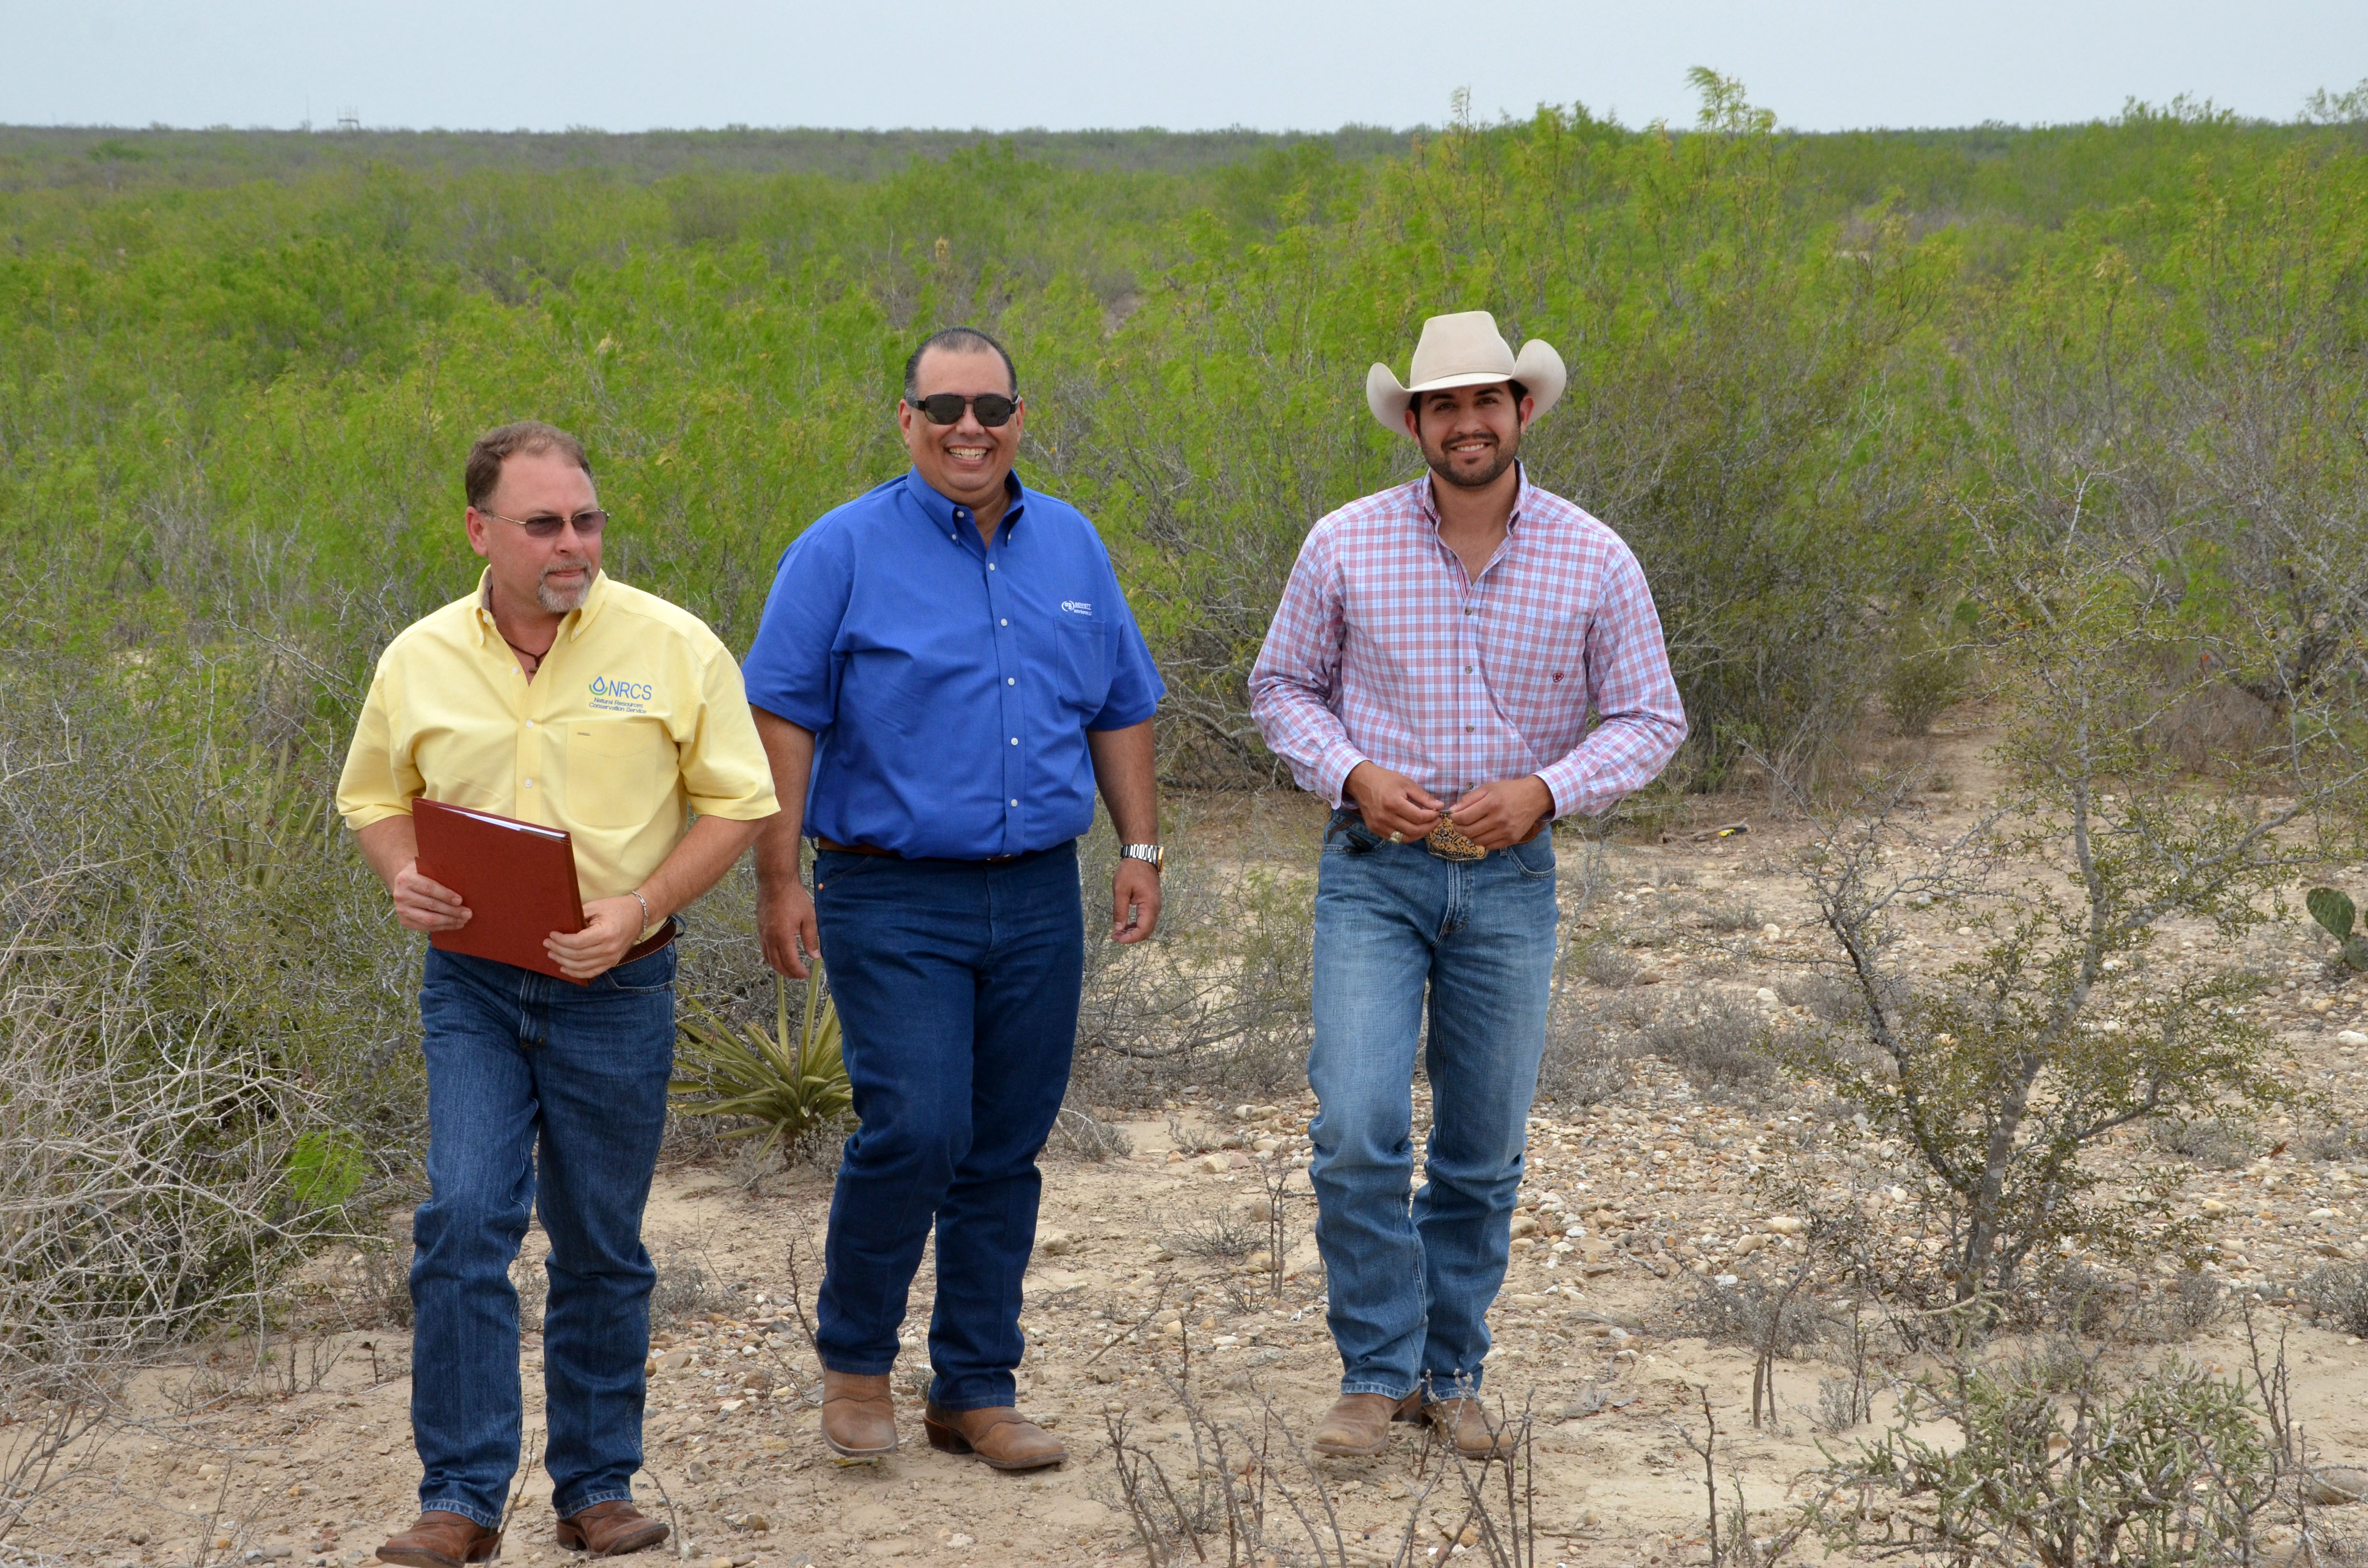 (L to R) Flavio Garza, NRCS district conservationist in Laredo, Texas, Jorge Espinoza of Laredo and